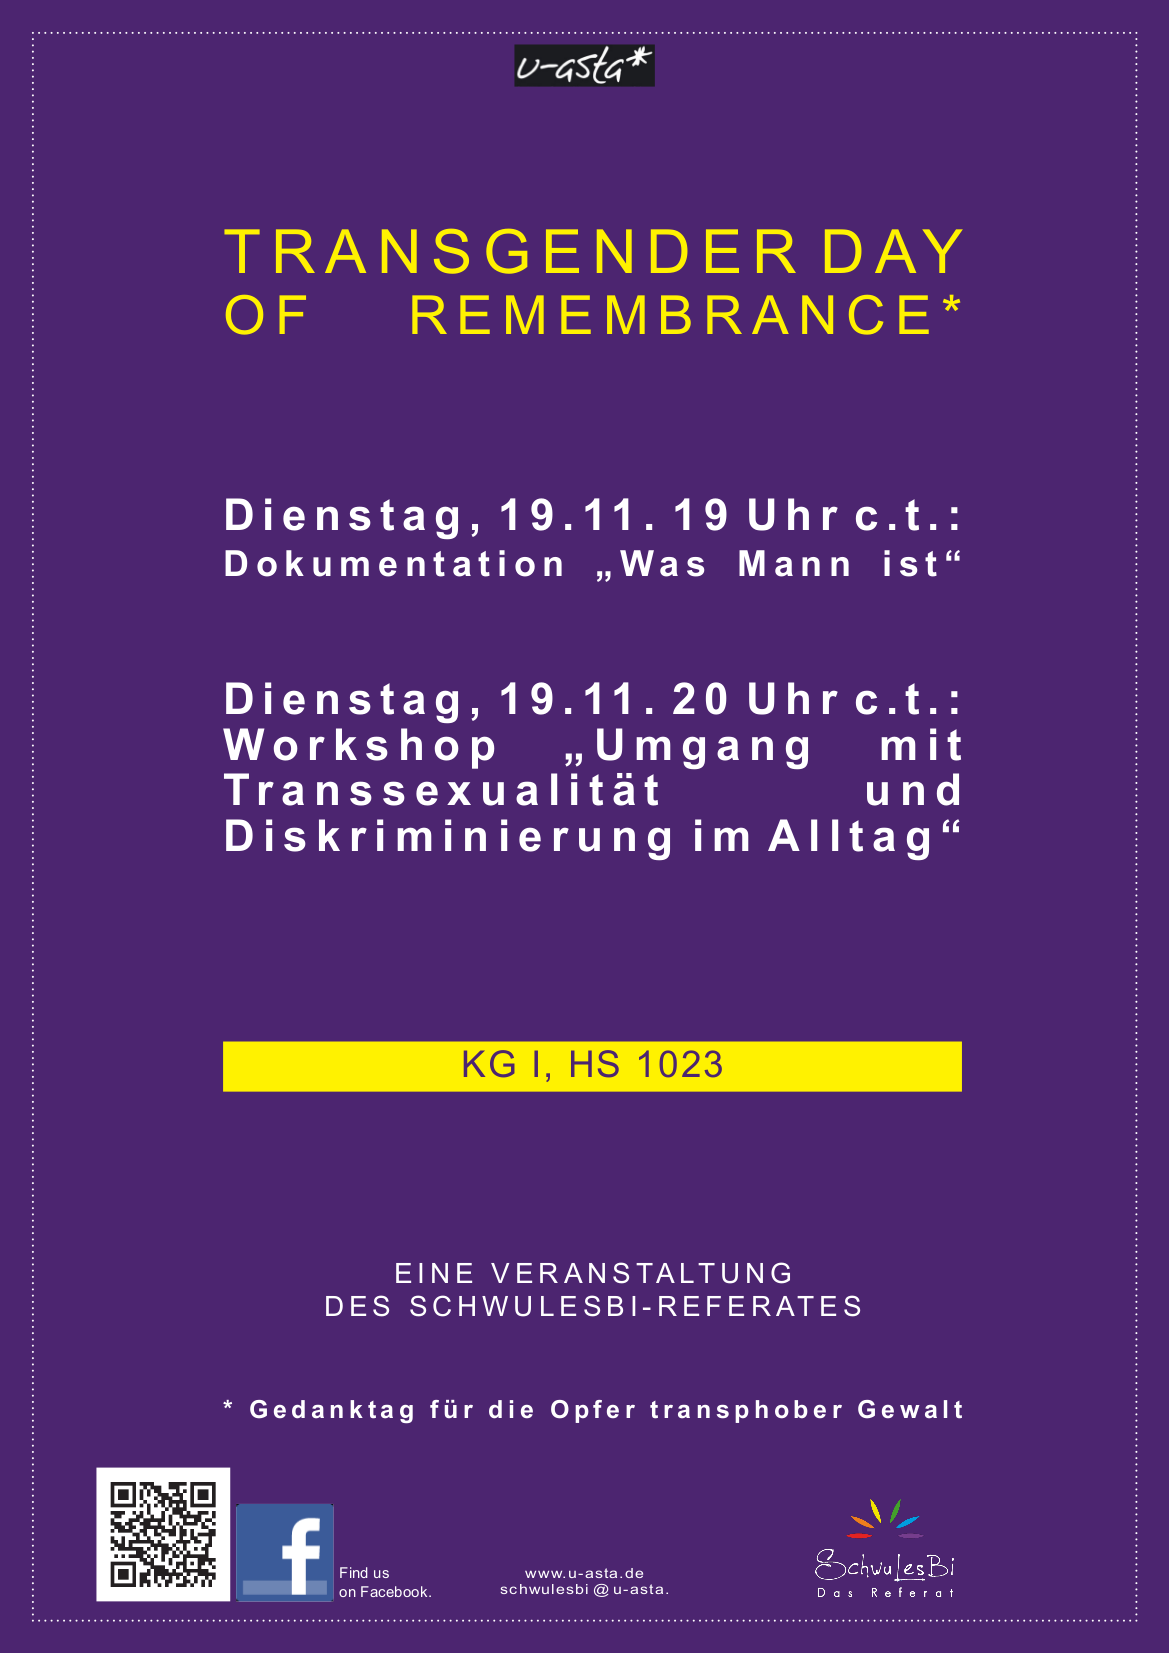 plakat des transgender day of remembrance